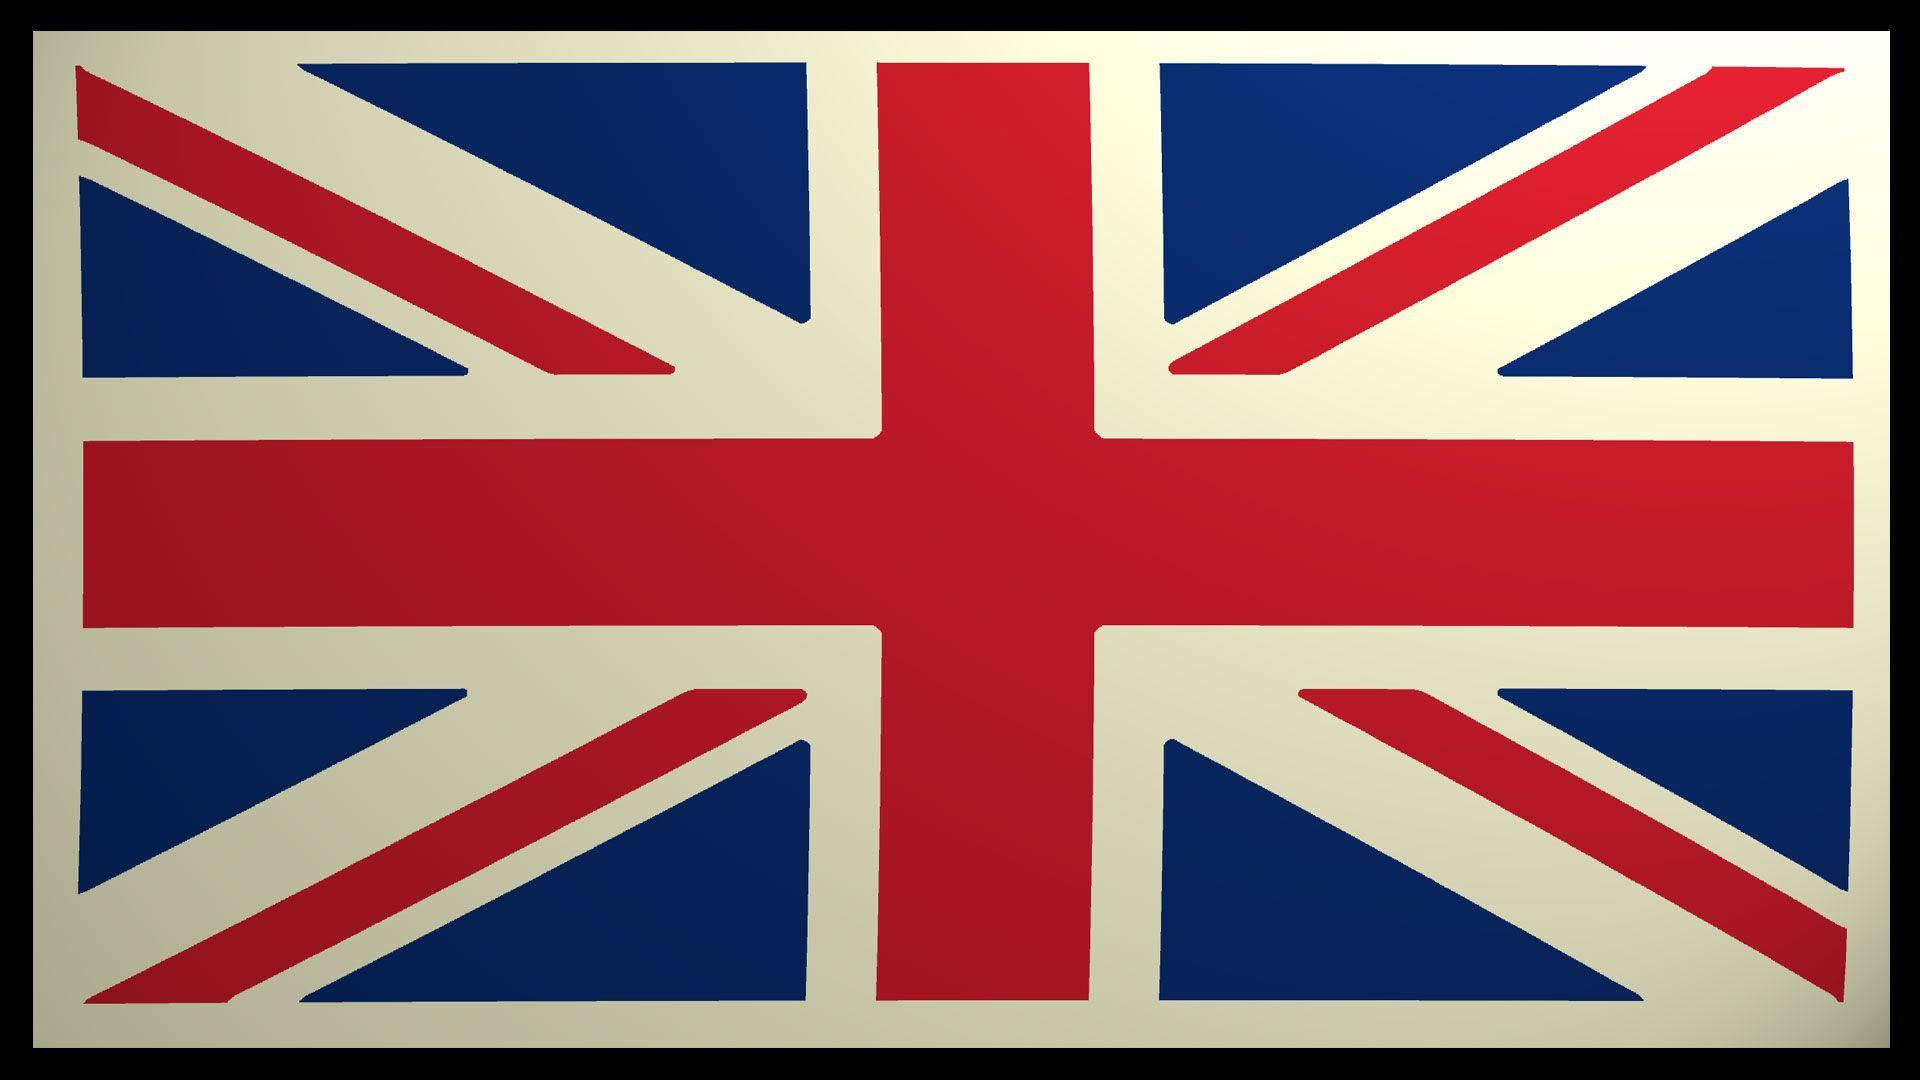 British United Kingdom Flag HD Wallpaper of Flag - hdwallpaper2013.